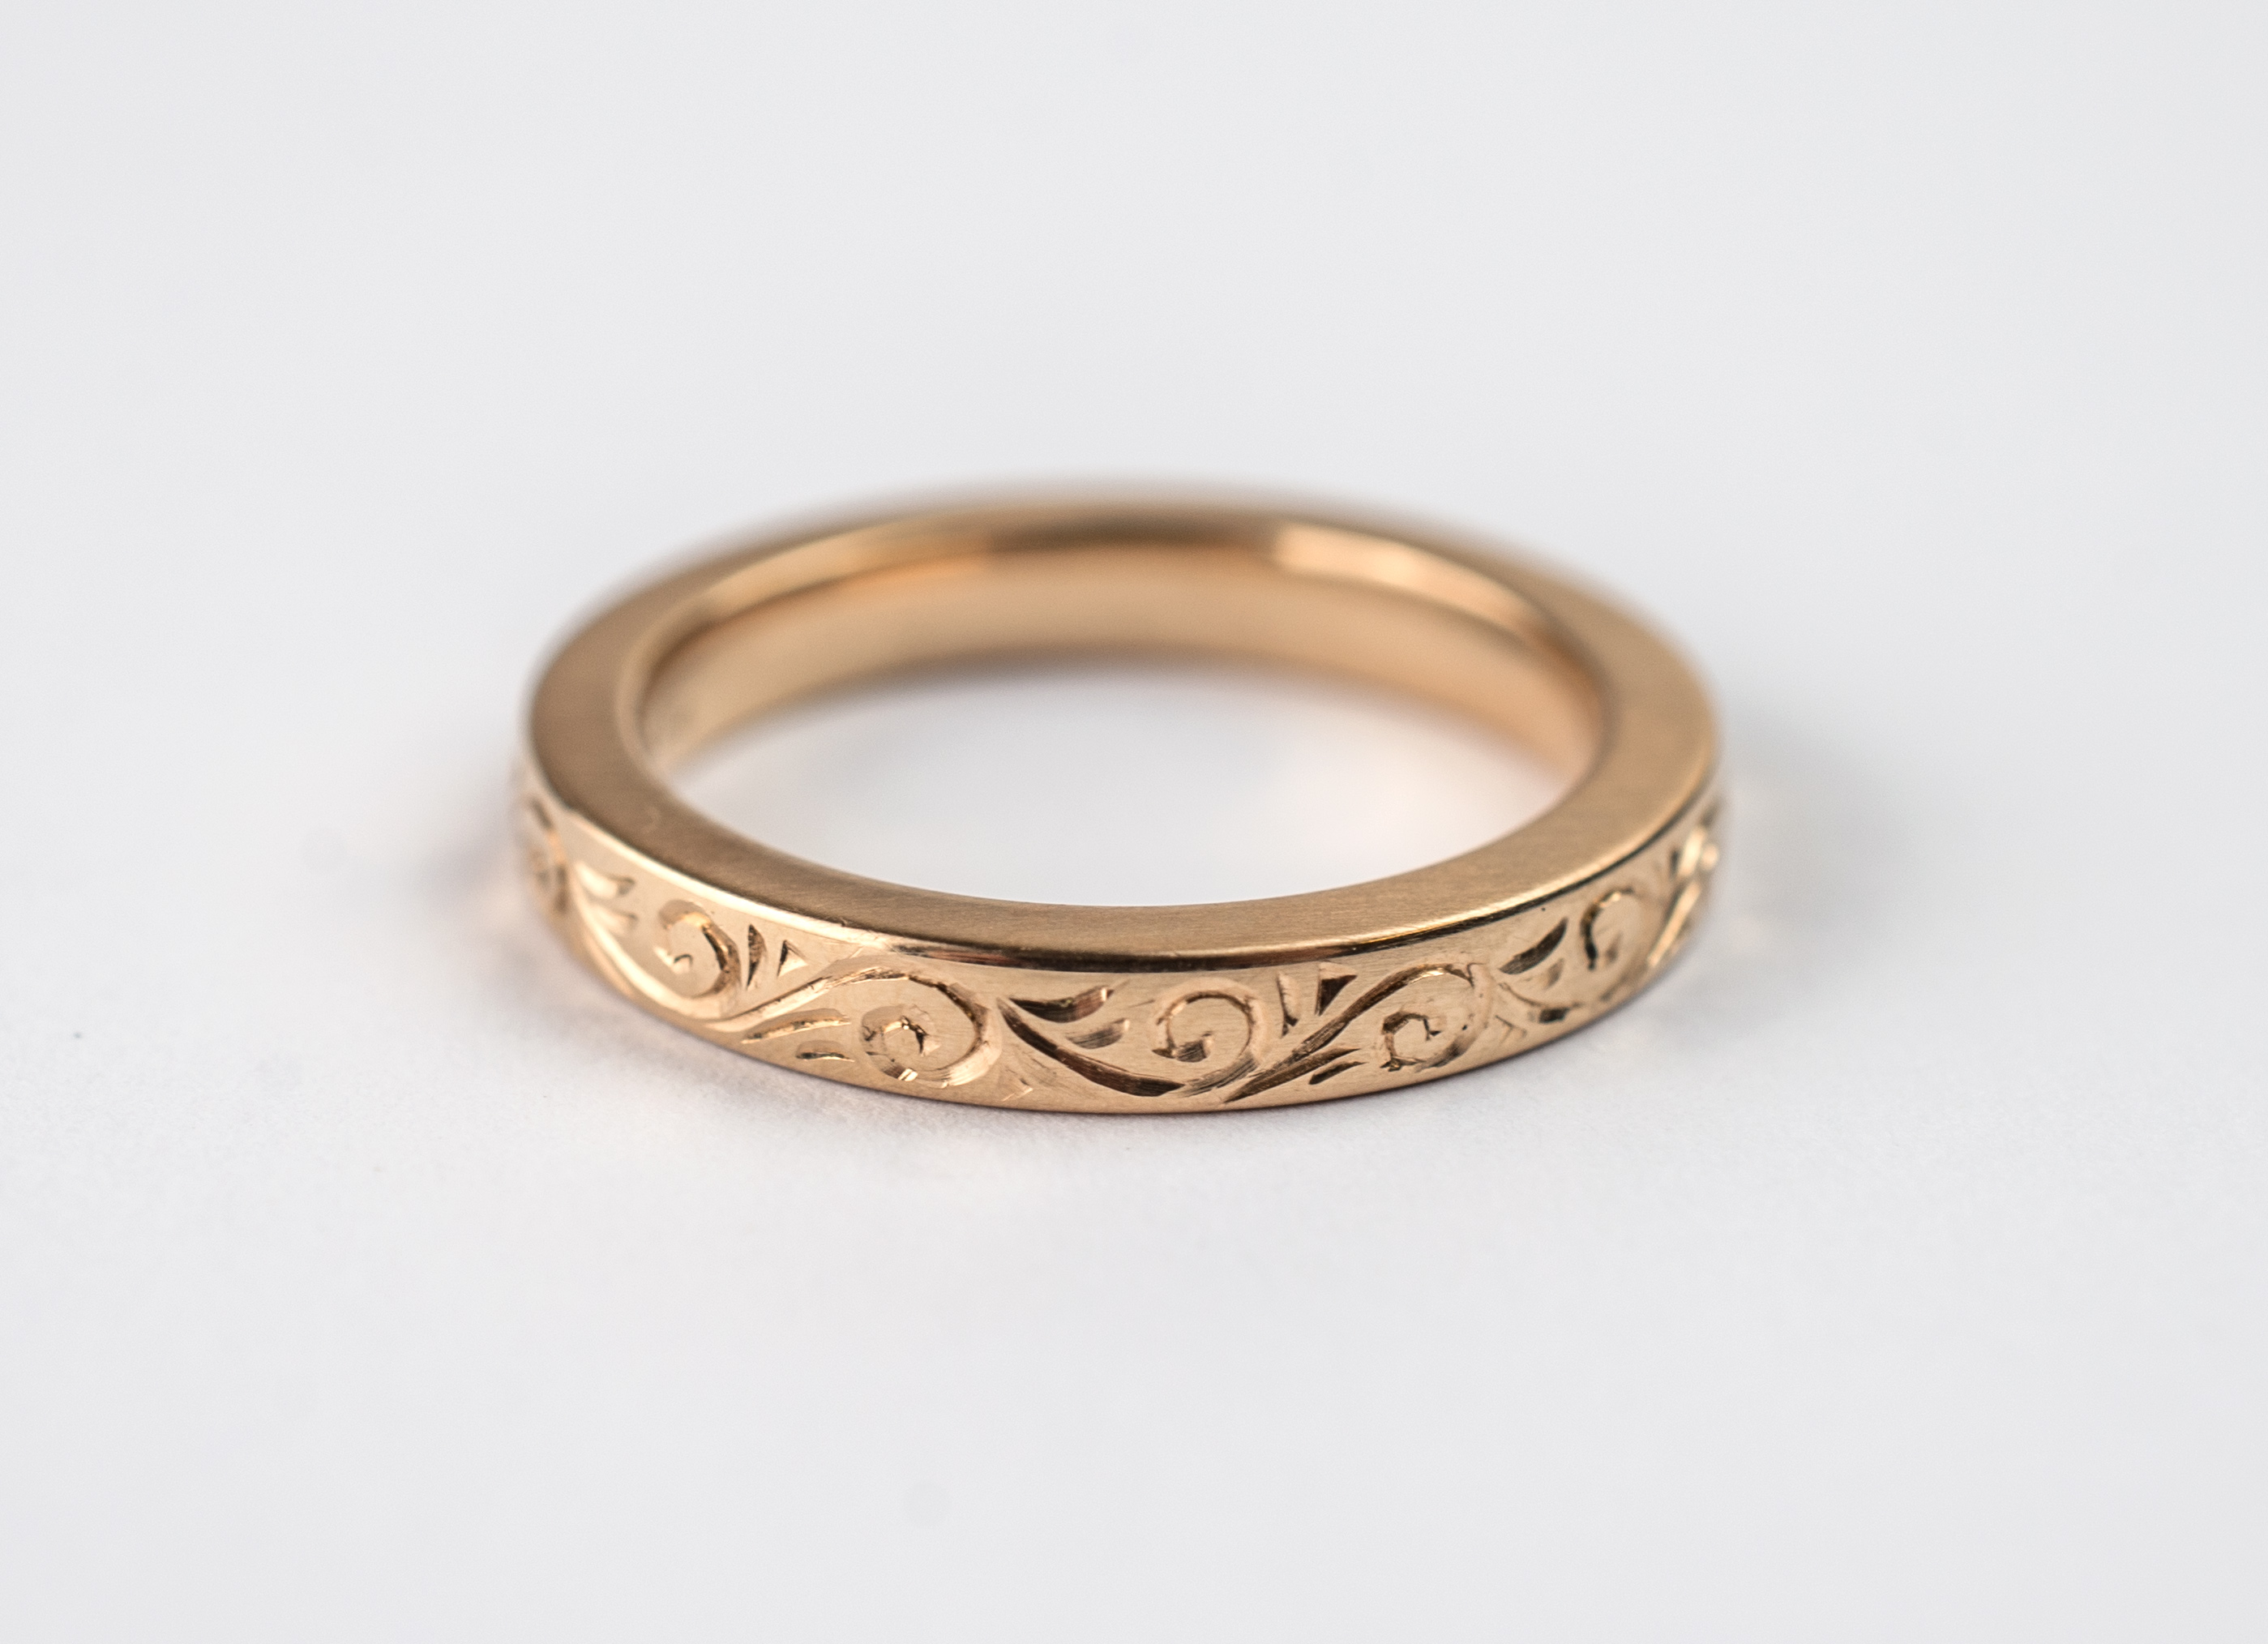 engraved wedding rings. anne-march-18.jpg engraved wedding rings